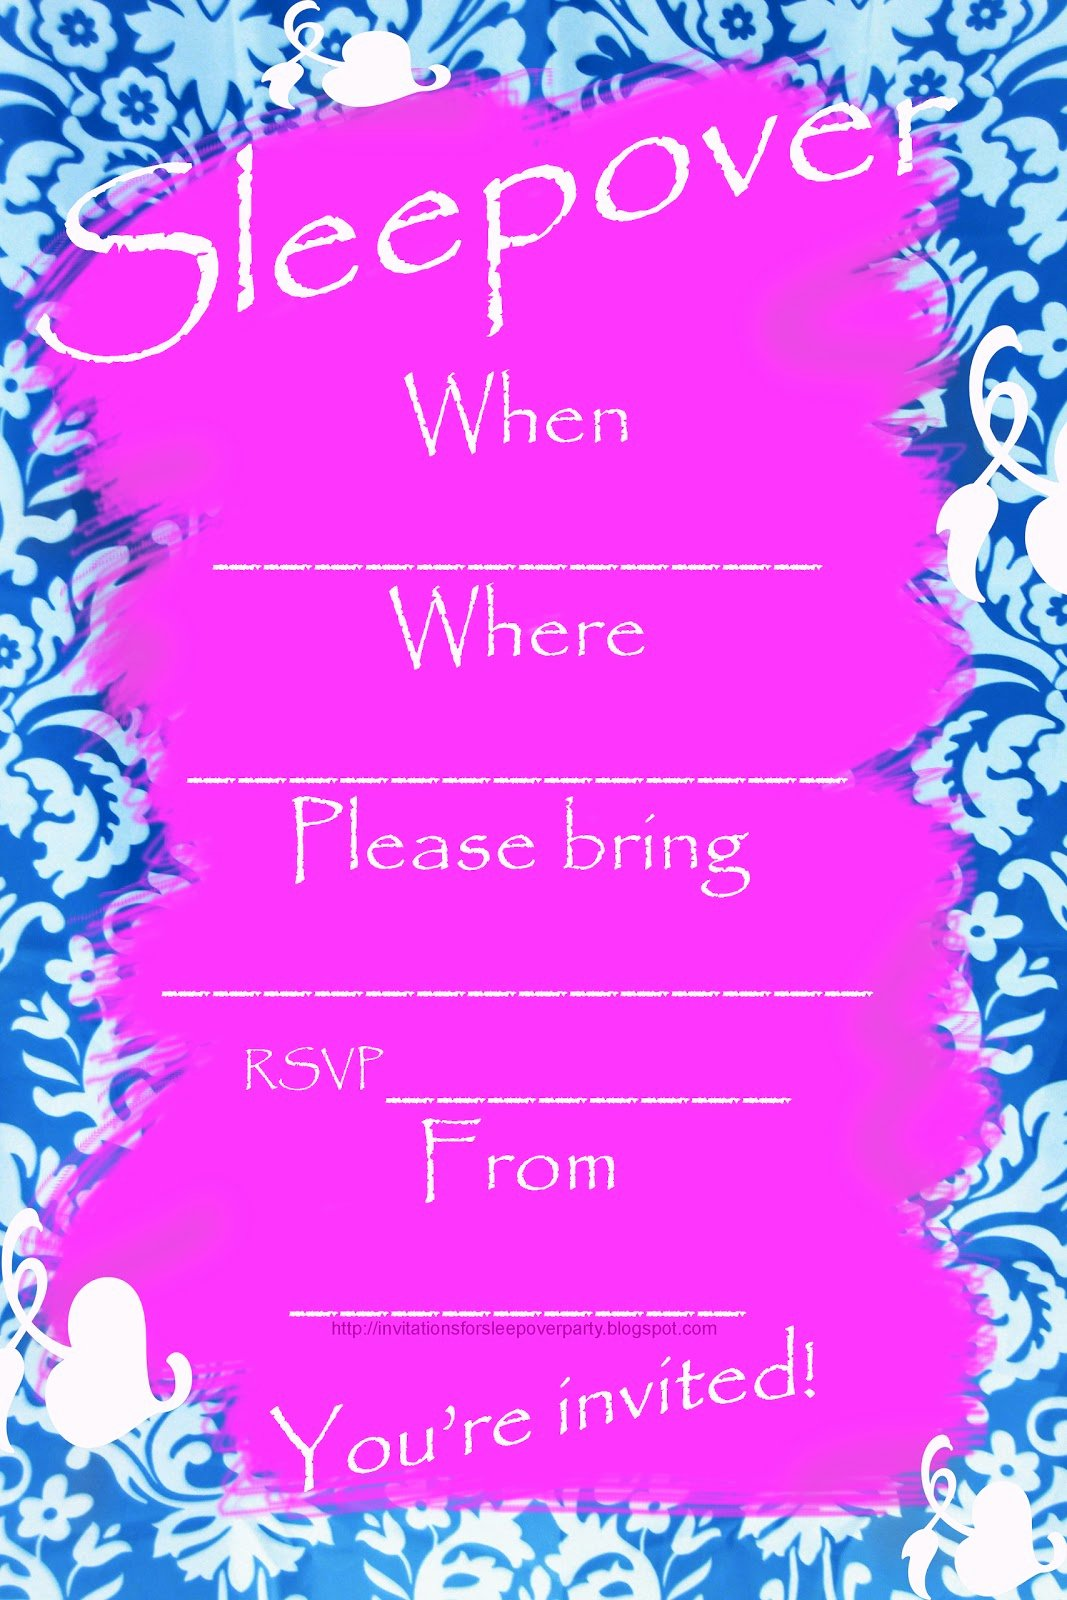 Pajama Party Invitations Free Printable Awesome Invitations for Sleepover Party